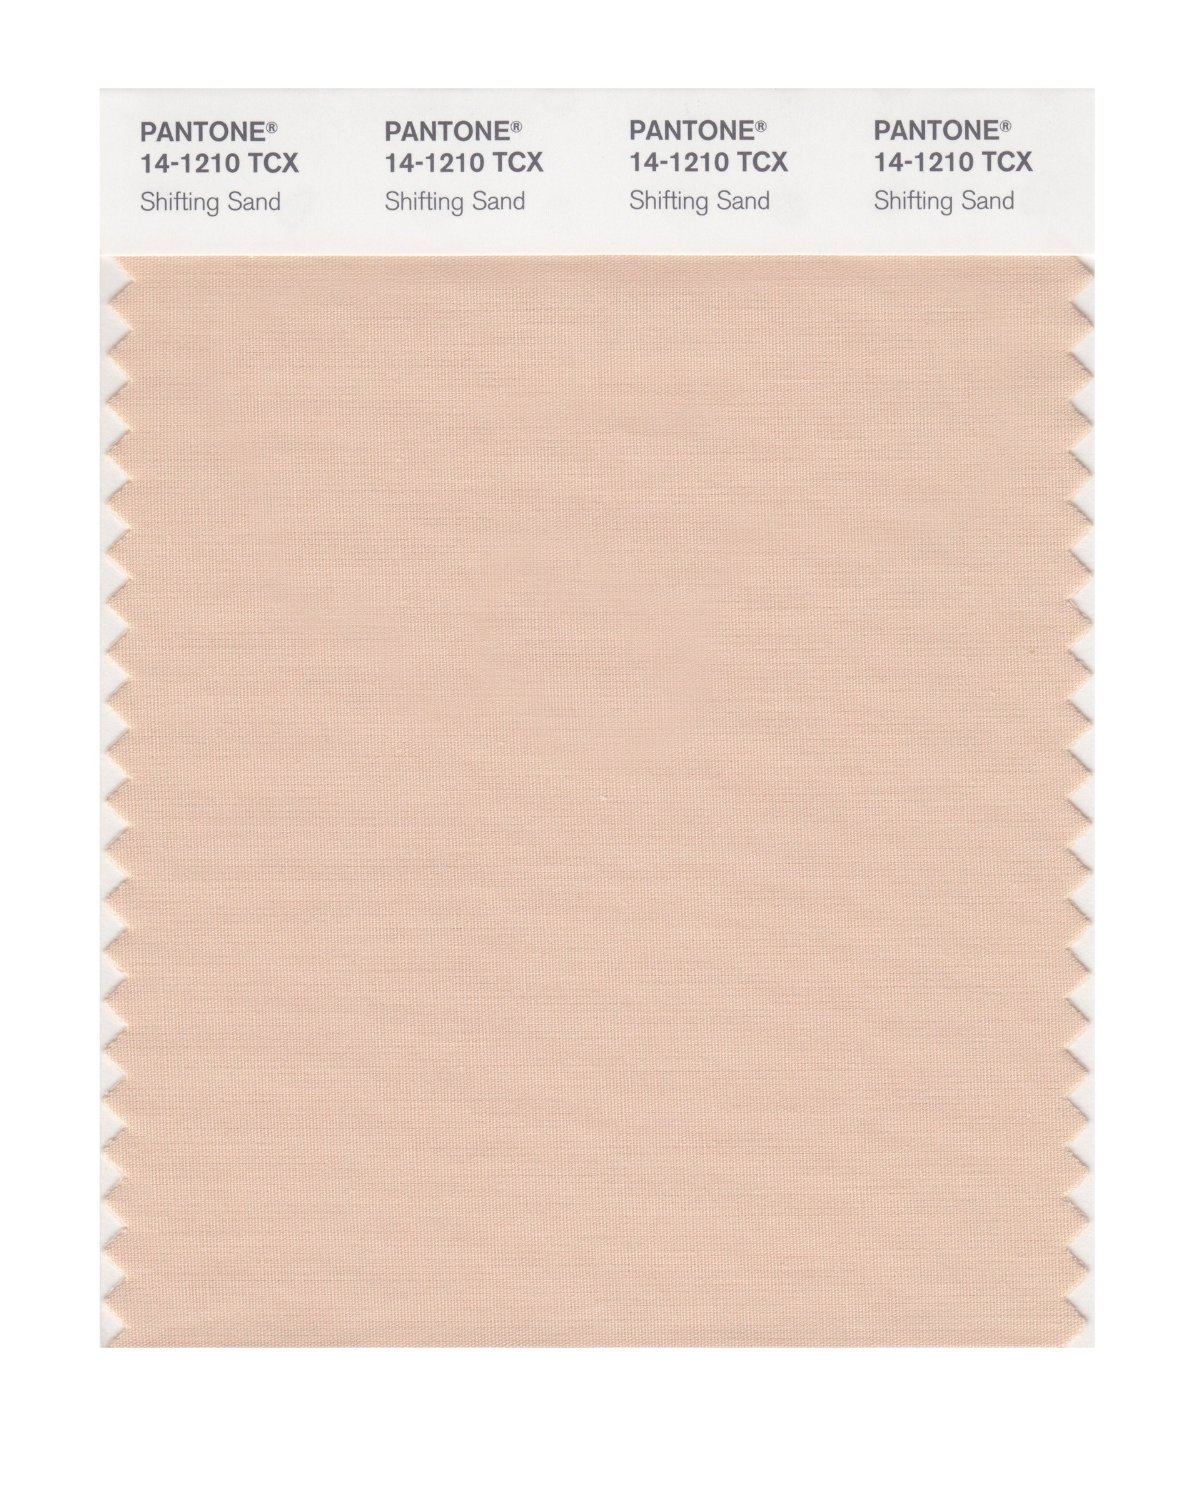 Pantone Smart Swatch 14-1210 Shifting Sand